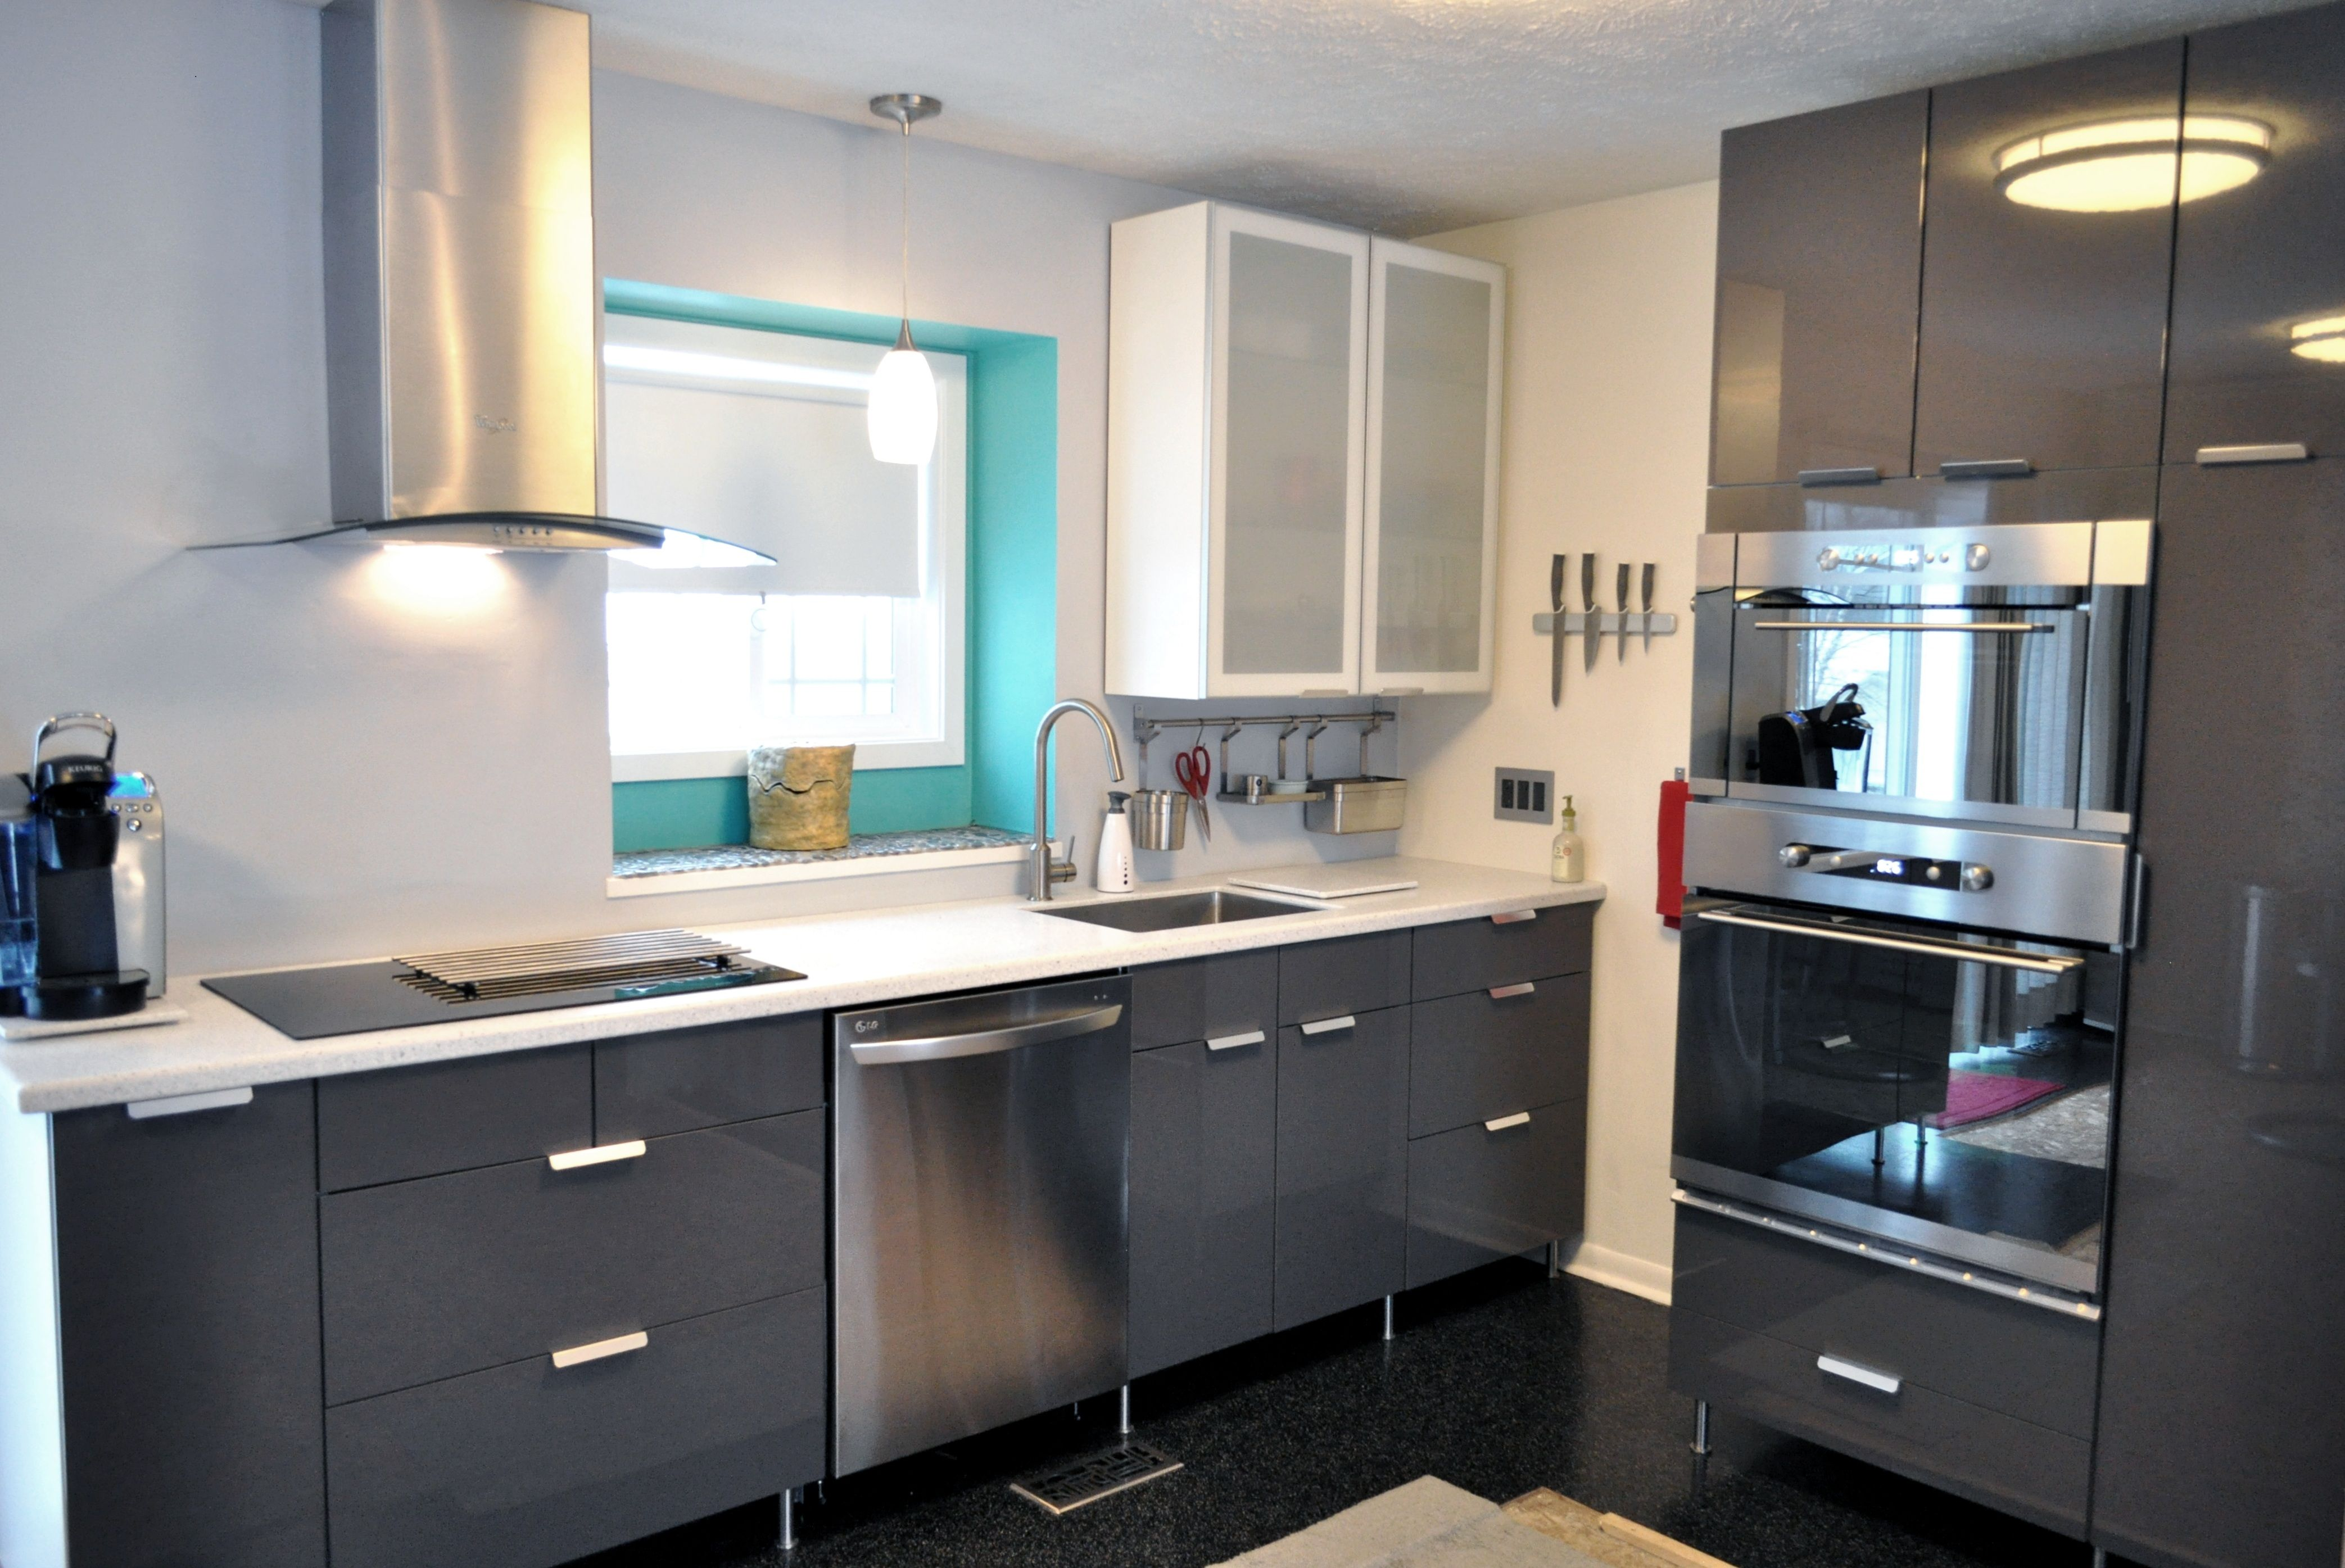 kitchen cabinets with legs lantern pendant lights for nutid built in oven and microwave induction